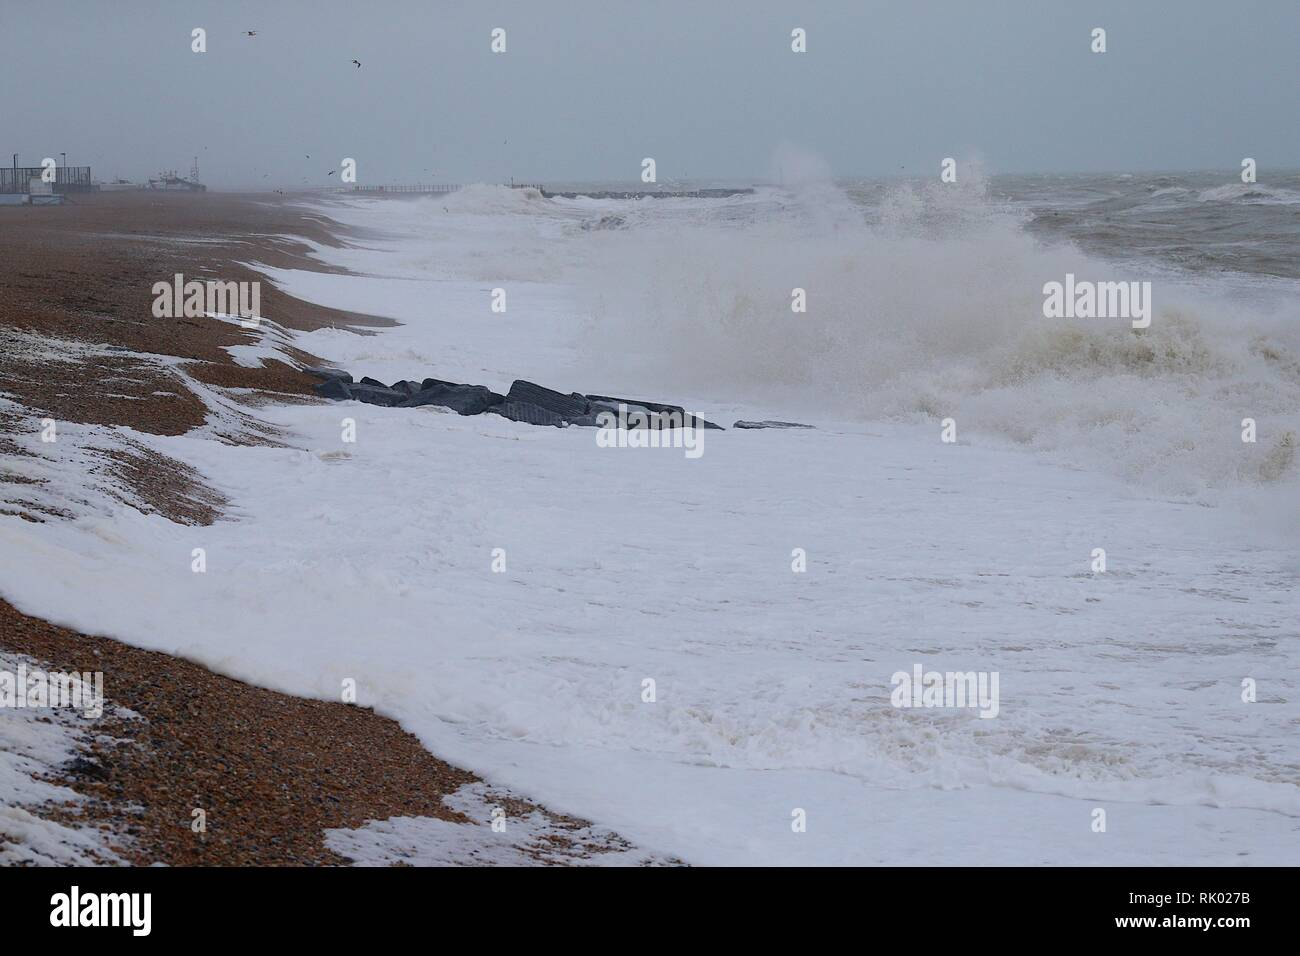 Hastings, East Sussex, UK. 08 Feb, 2019. UK Weather: Storm Eric. Gale force winds bring raging seas to Hastings in East Sussex. © Paul Lawrenson 2019, Photo Credit: Paul Lawrenson / Alamy Live News Stock Photo